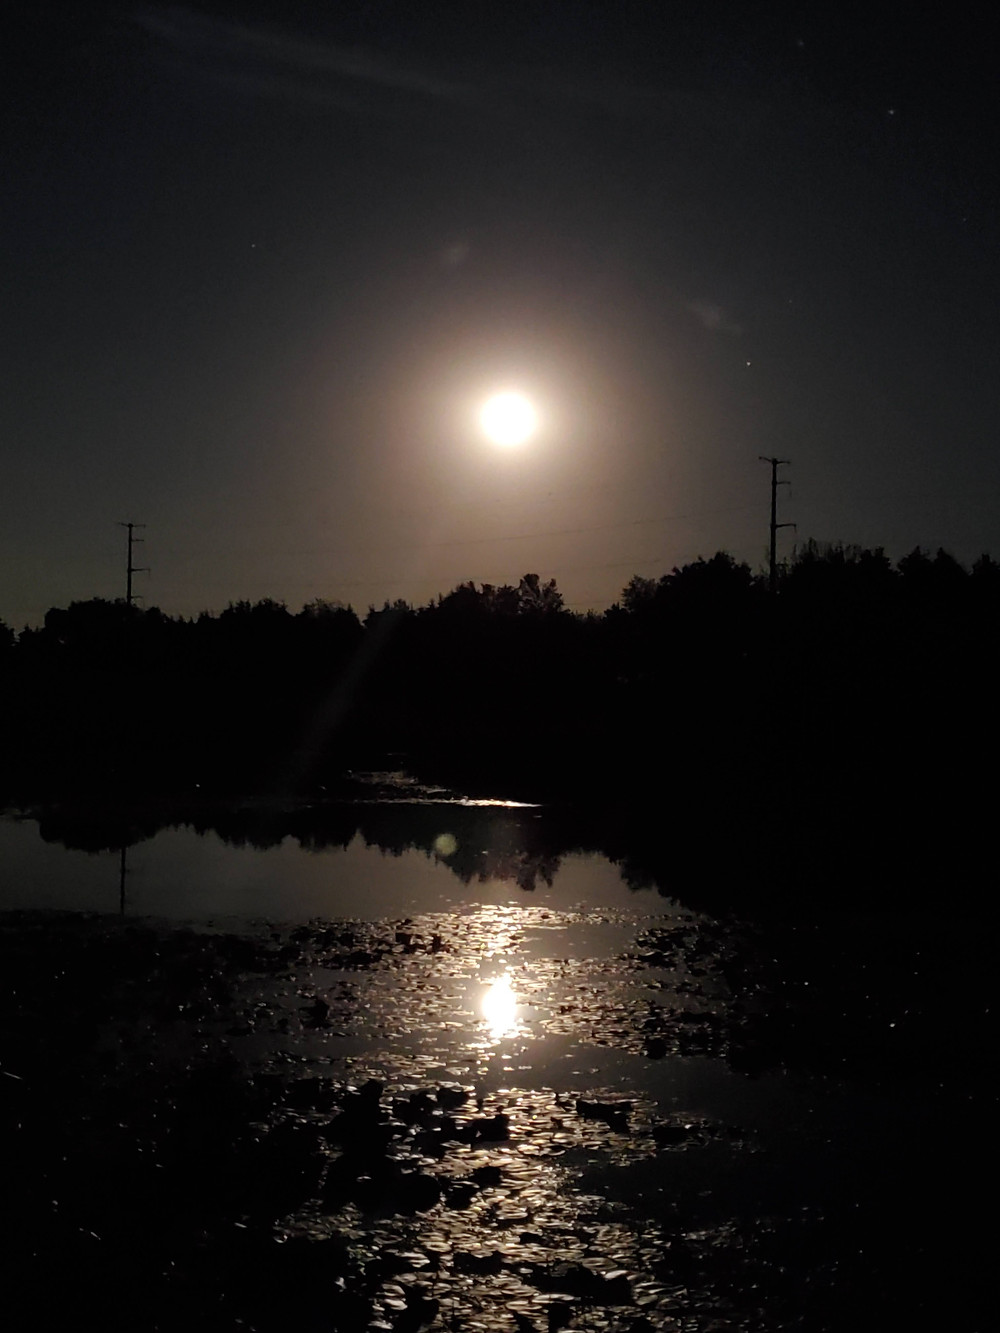 Full Moon and a reflection of the moon on the pond.